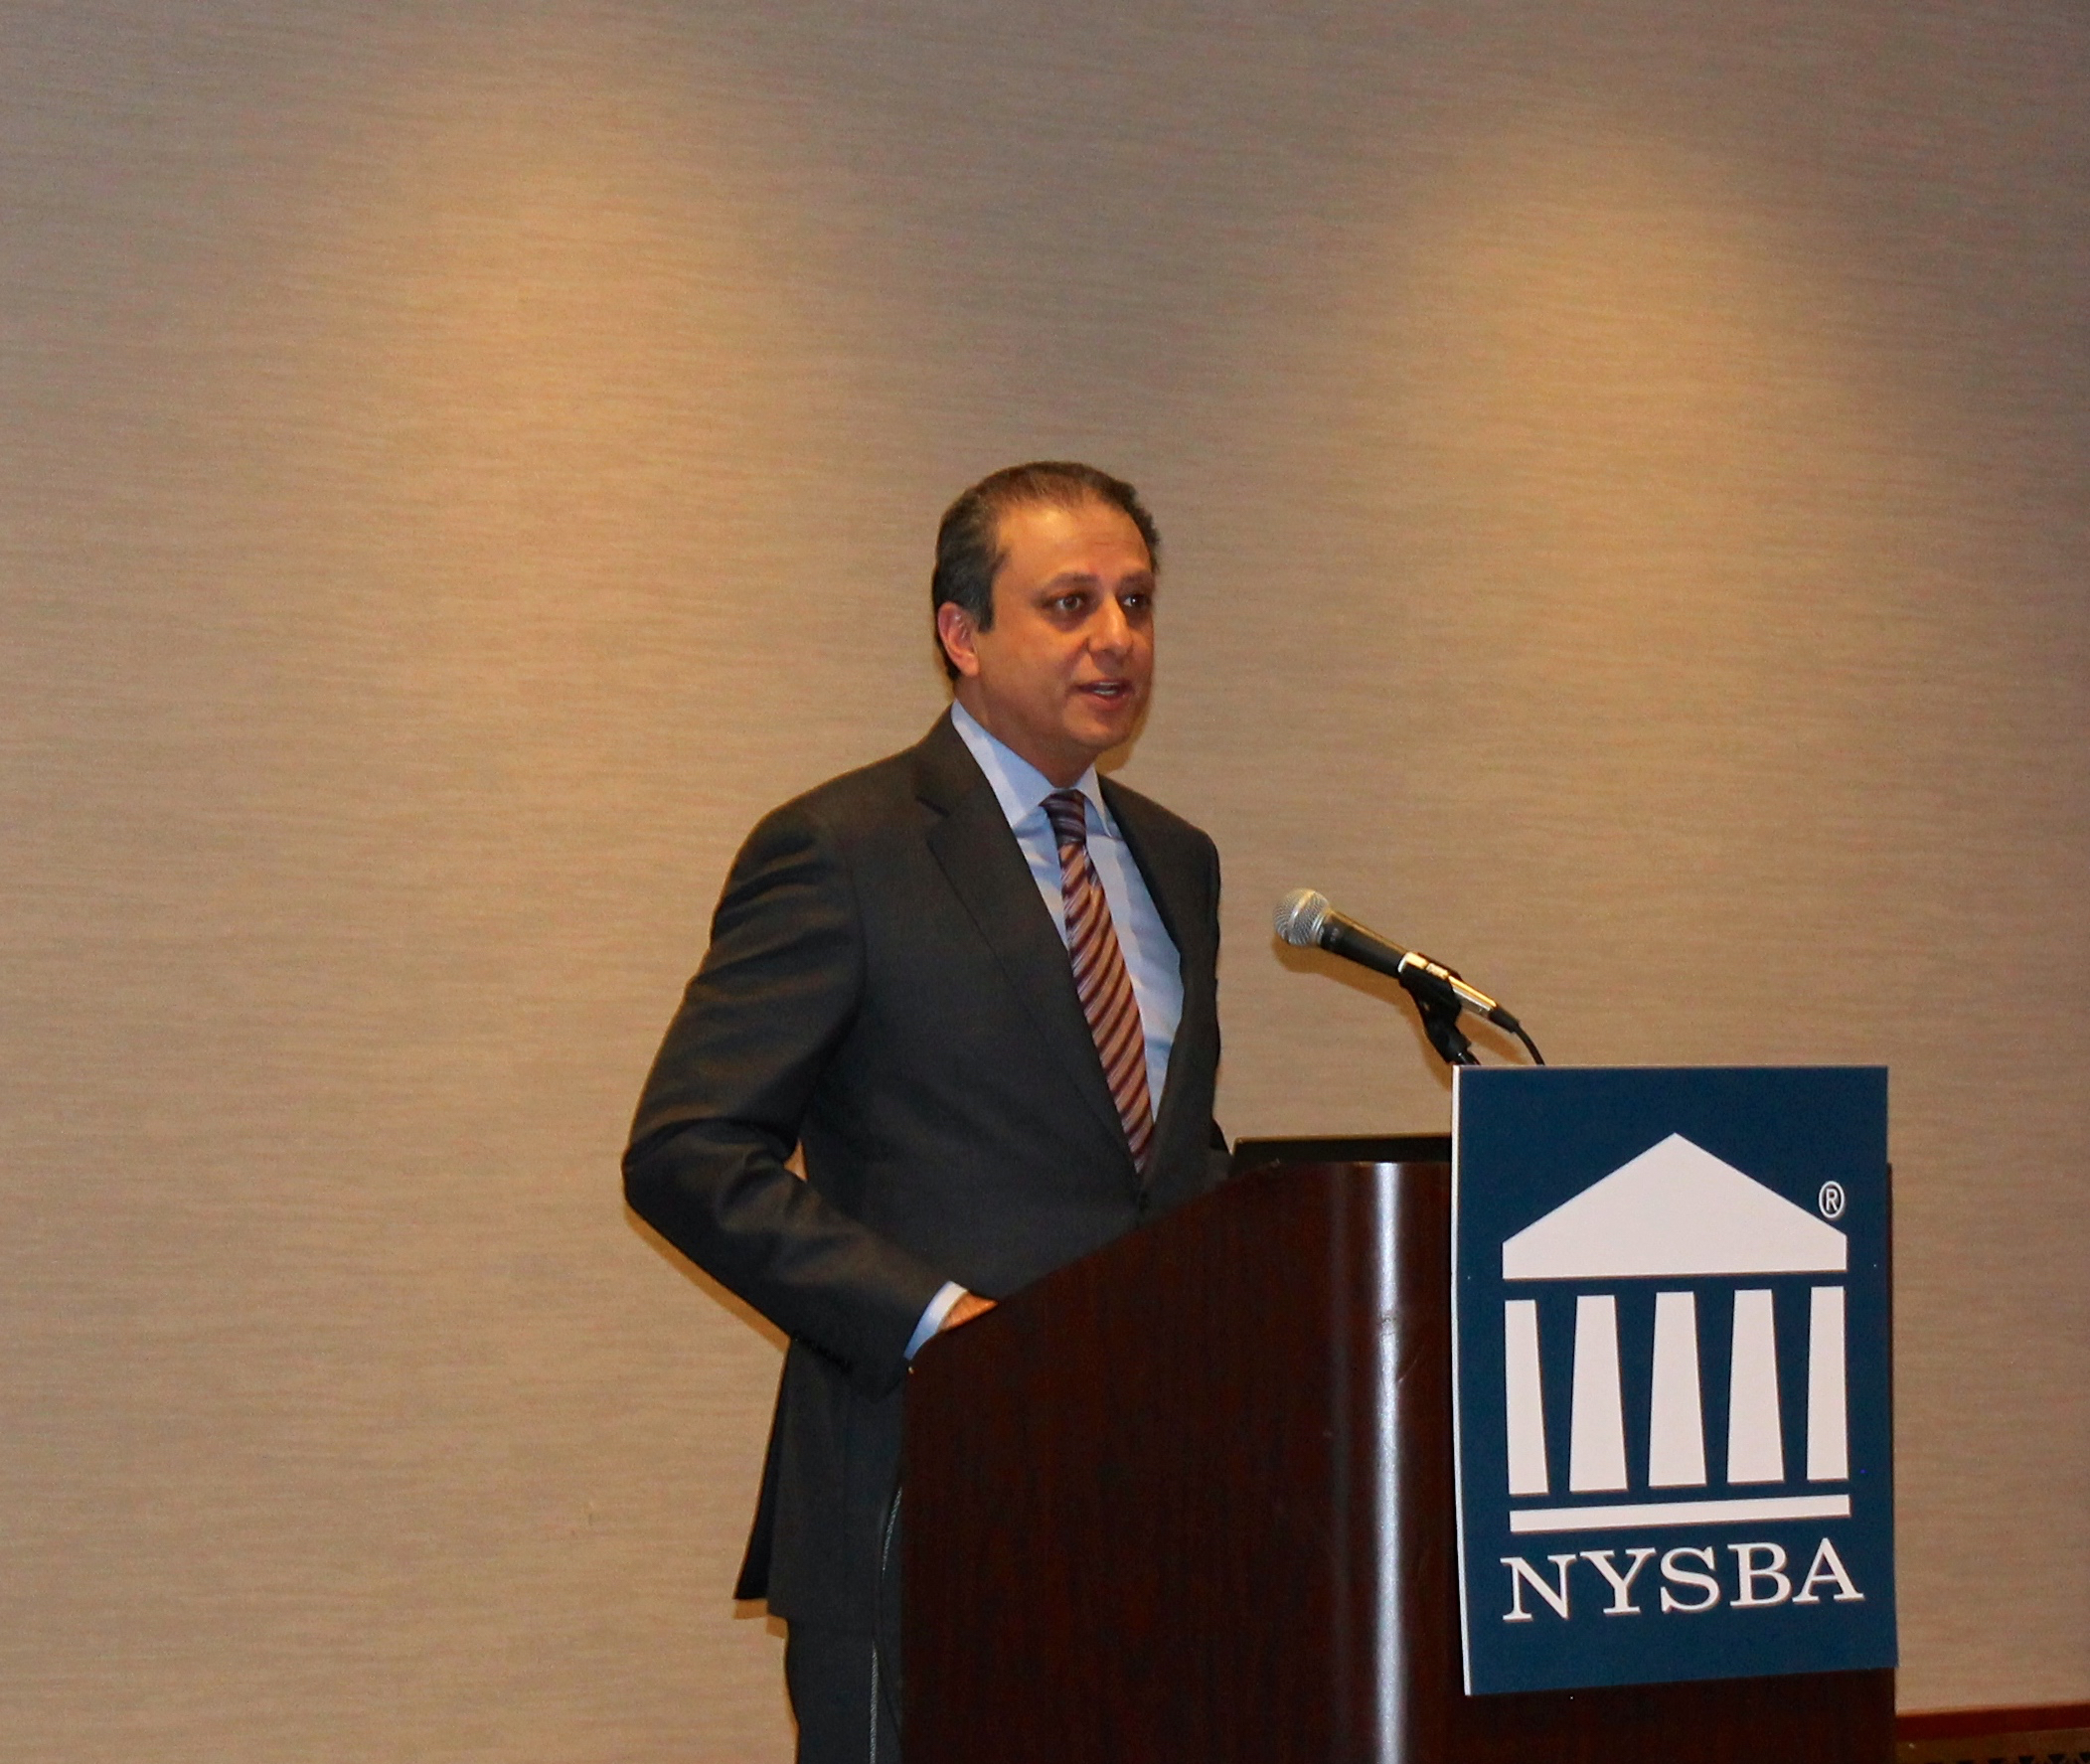 In January 2017, U.S. Attorney Preet Bharara received an award from the New York State Bar Association at its annual convention in Manhattan. U.S. Attorney Bharara routinely delivers speeches to banks, universities, and in public settings. However, not all of the records of U.S. Attorney Bharara's speeches are made public. For example, Web pages maintained by the U.S. Attorney's Office only publish the transcripts of some of U.S. Attorney Bharara's speeches. The publisher of Progress Queens filed a FOIA Request, seeking the release of records of U.S. Attorney Bharara's speeches. When the U.S. Department of Justice made determinations that would prevent the release of the records, the publisher of Progress Queens filed an administrative appeal of those determinations. When the DOJ failed to answer the FOIA Appeal, the publisher of Progress Queens commenced the FOIA Lawsuit. U.S. District Court Judge John Koeltl is overseeing the litigation. Source : Louis Flores/Progress Queens File Photograph